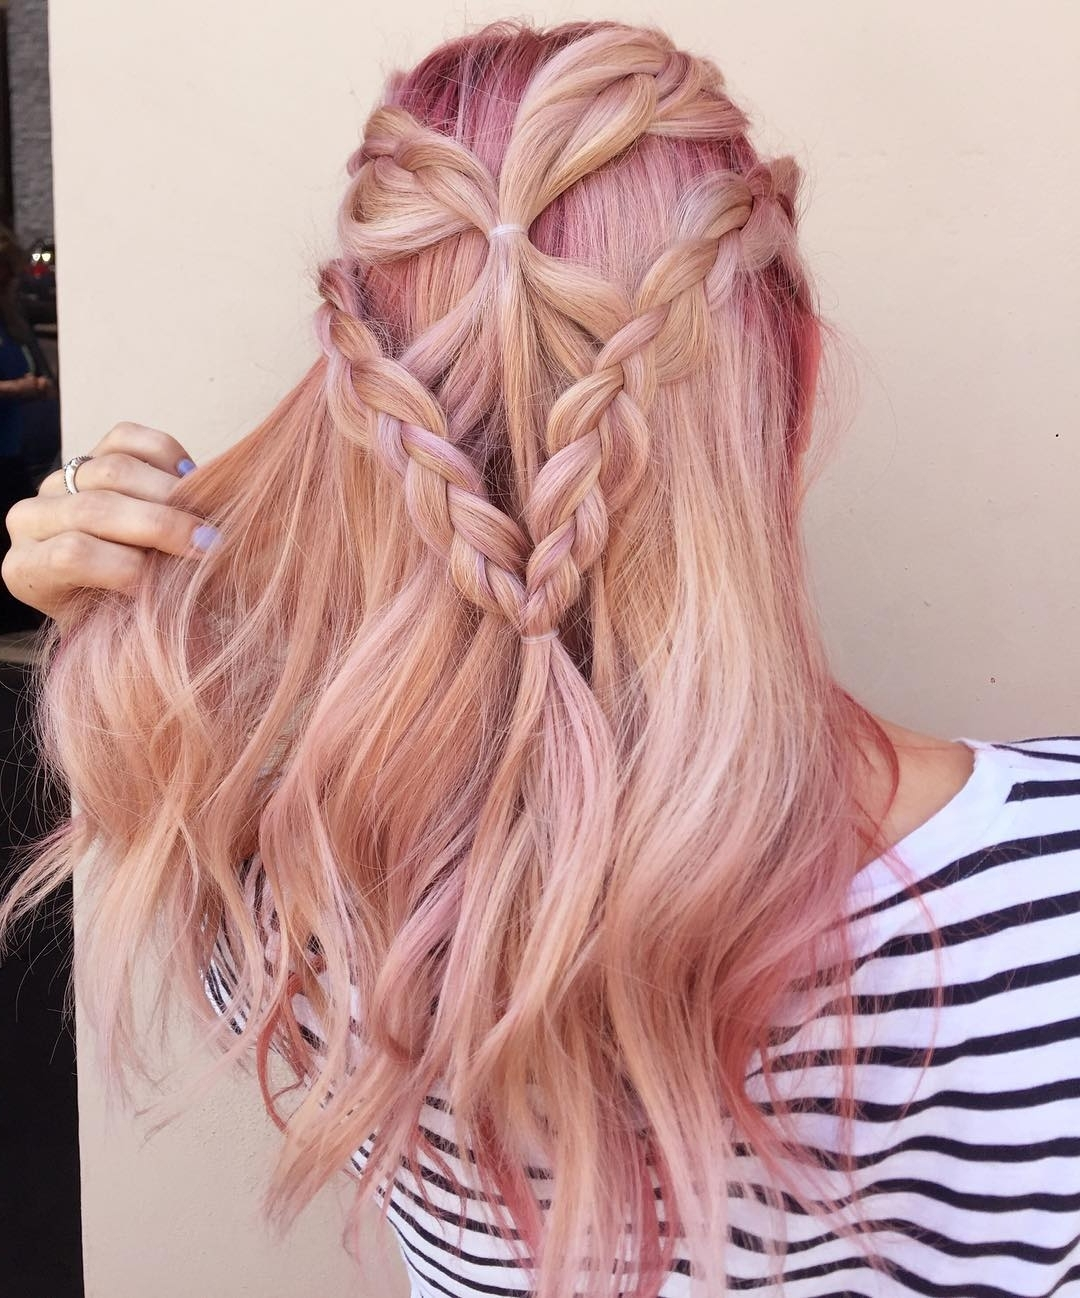 20 Long Hairstyles You Will Want To Rock Immediately! For Most Up To Date Ash Blonde Half Up Hairstyles (View 4 of 20)